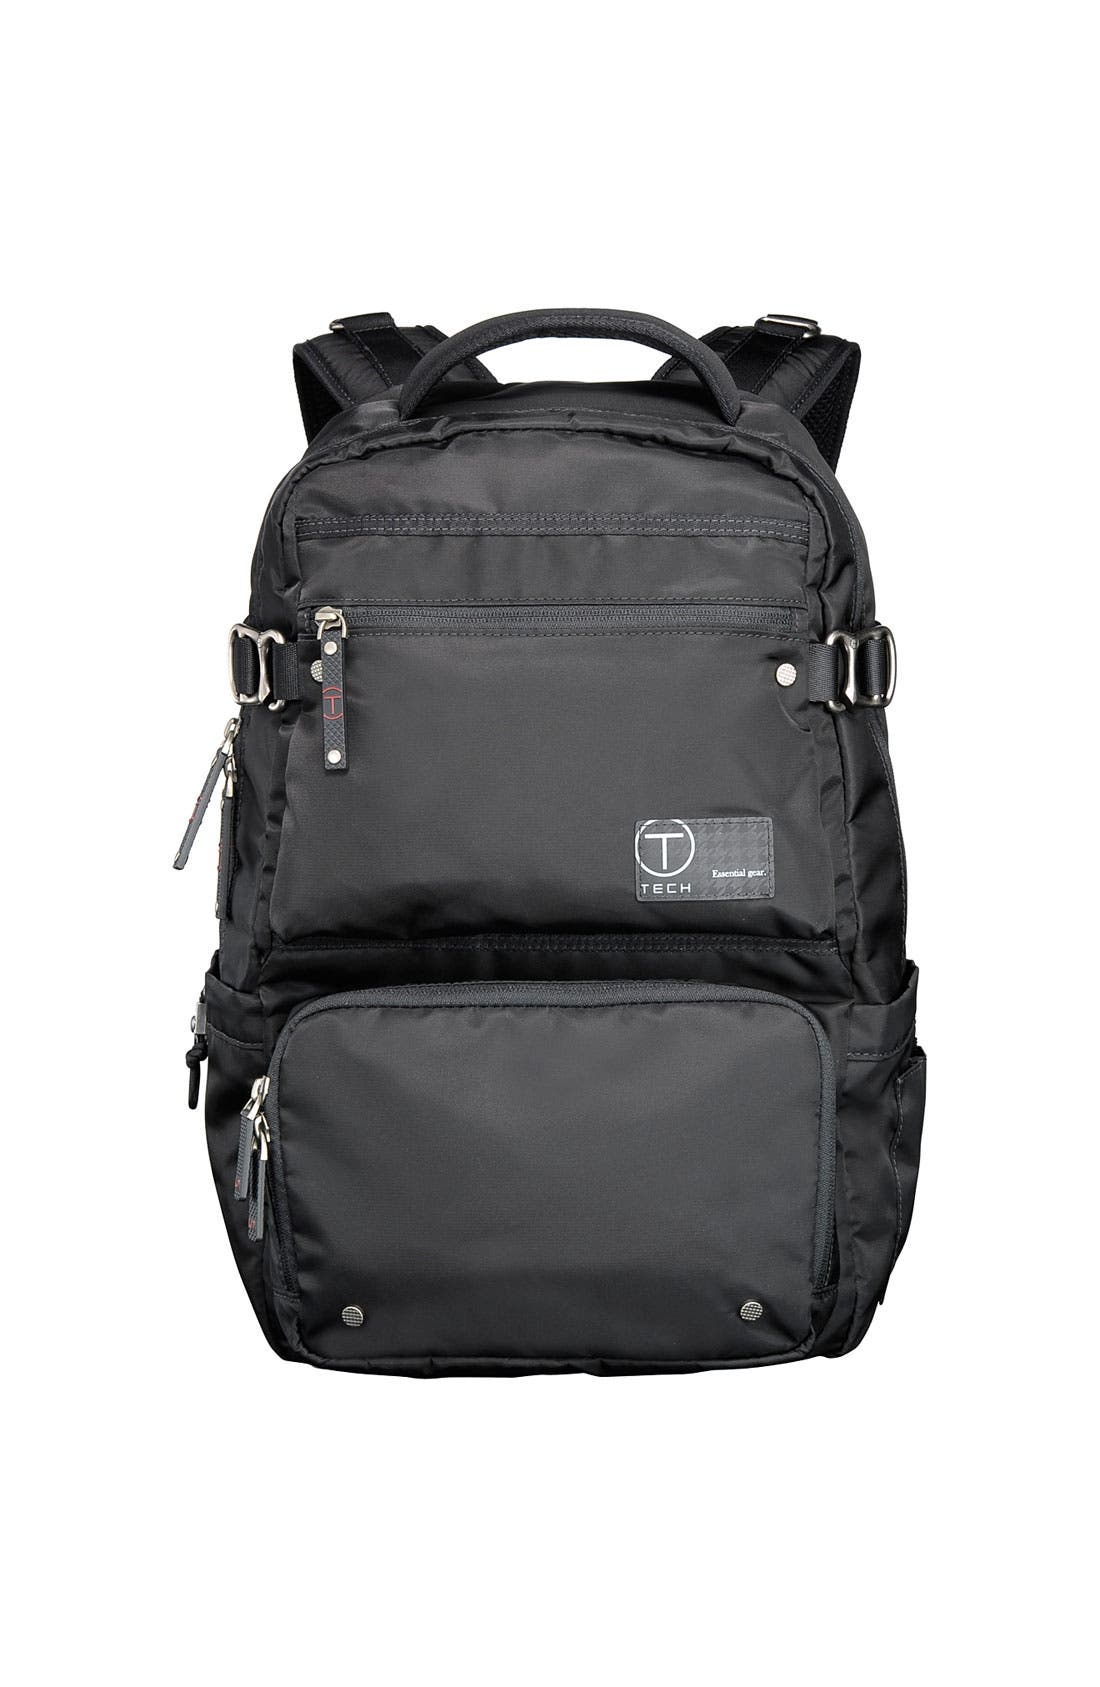 Main Image - Tumi 'T-Tech Mellville' Zip Top BriefPack®